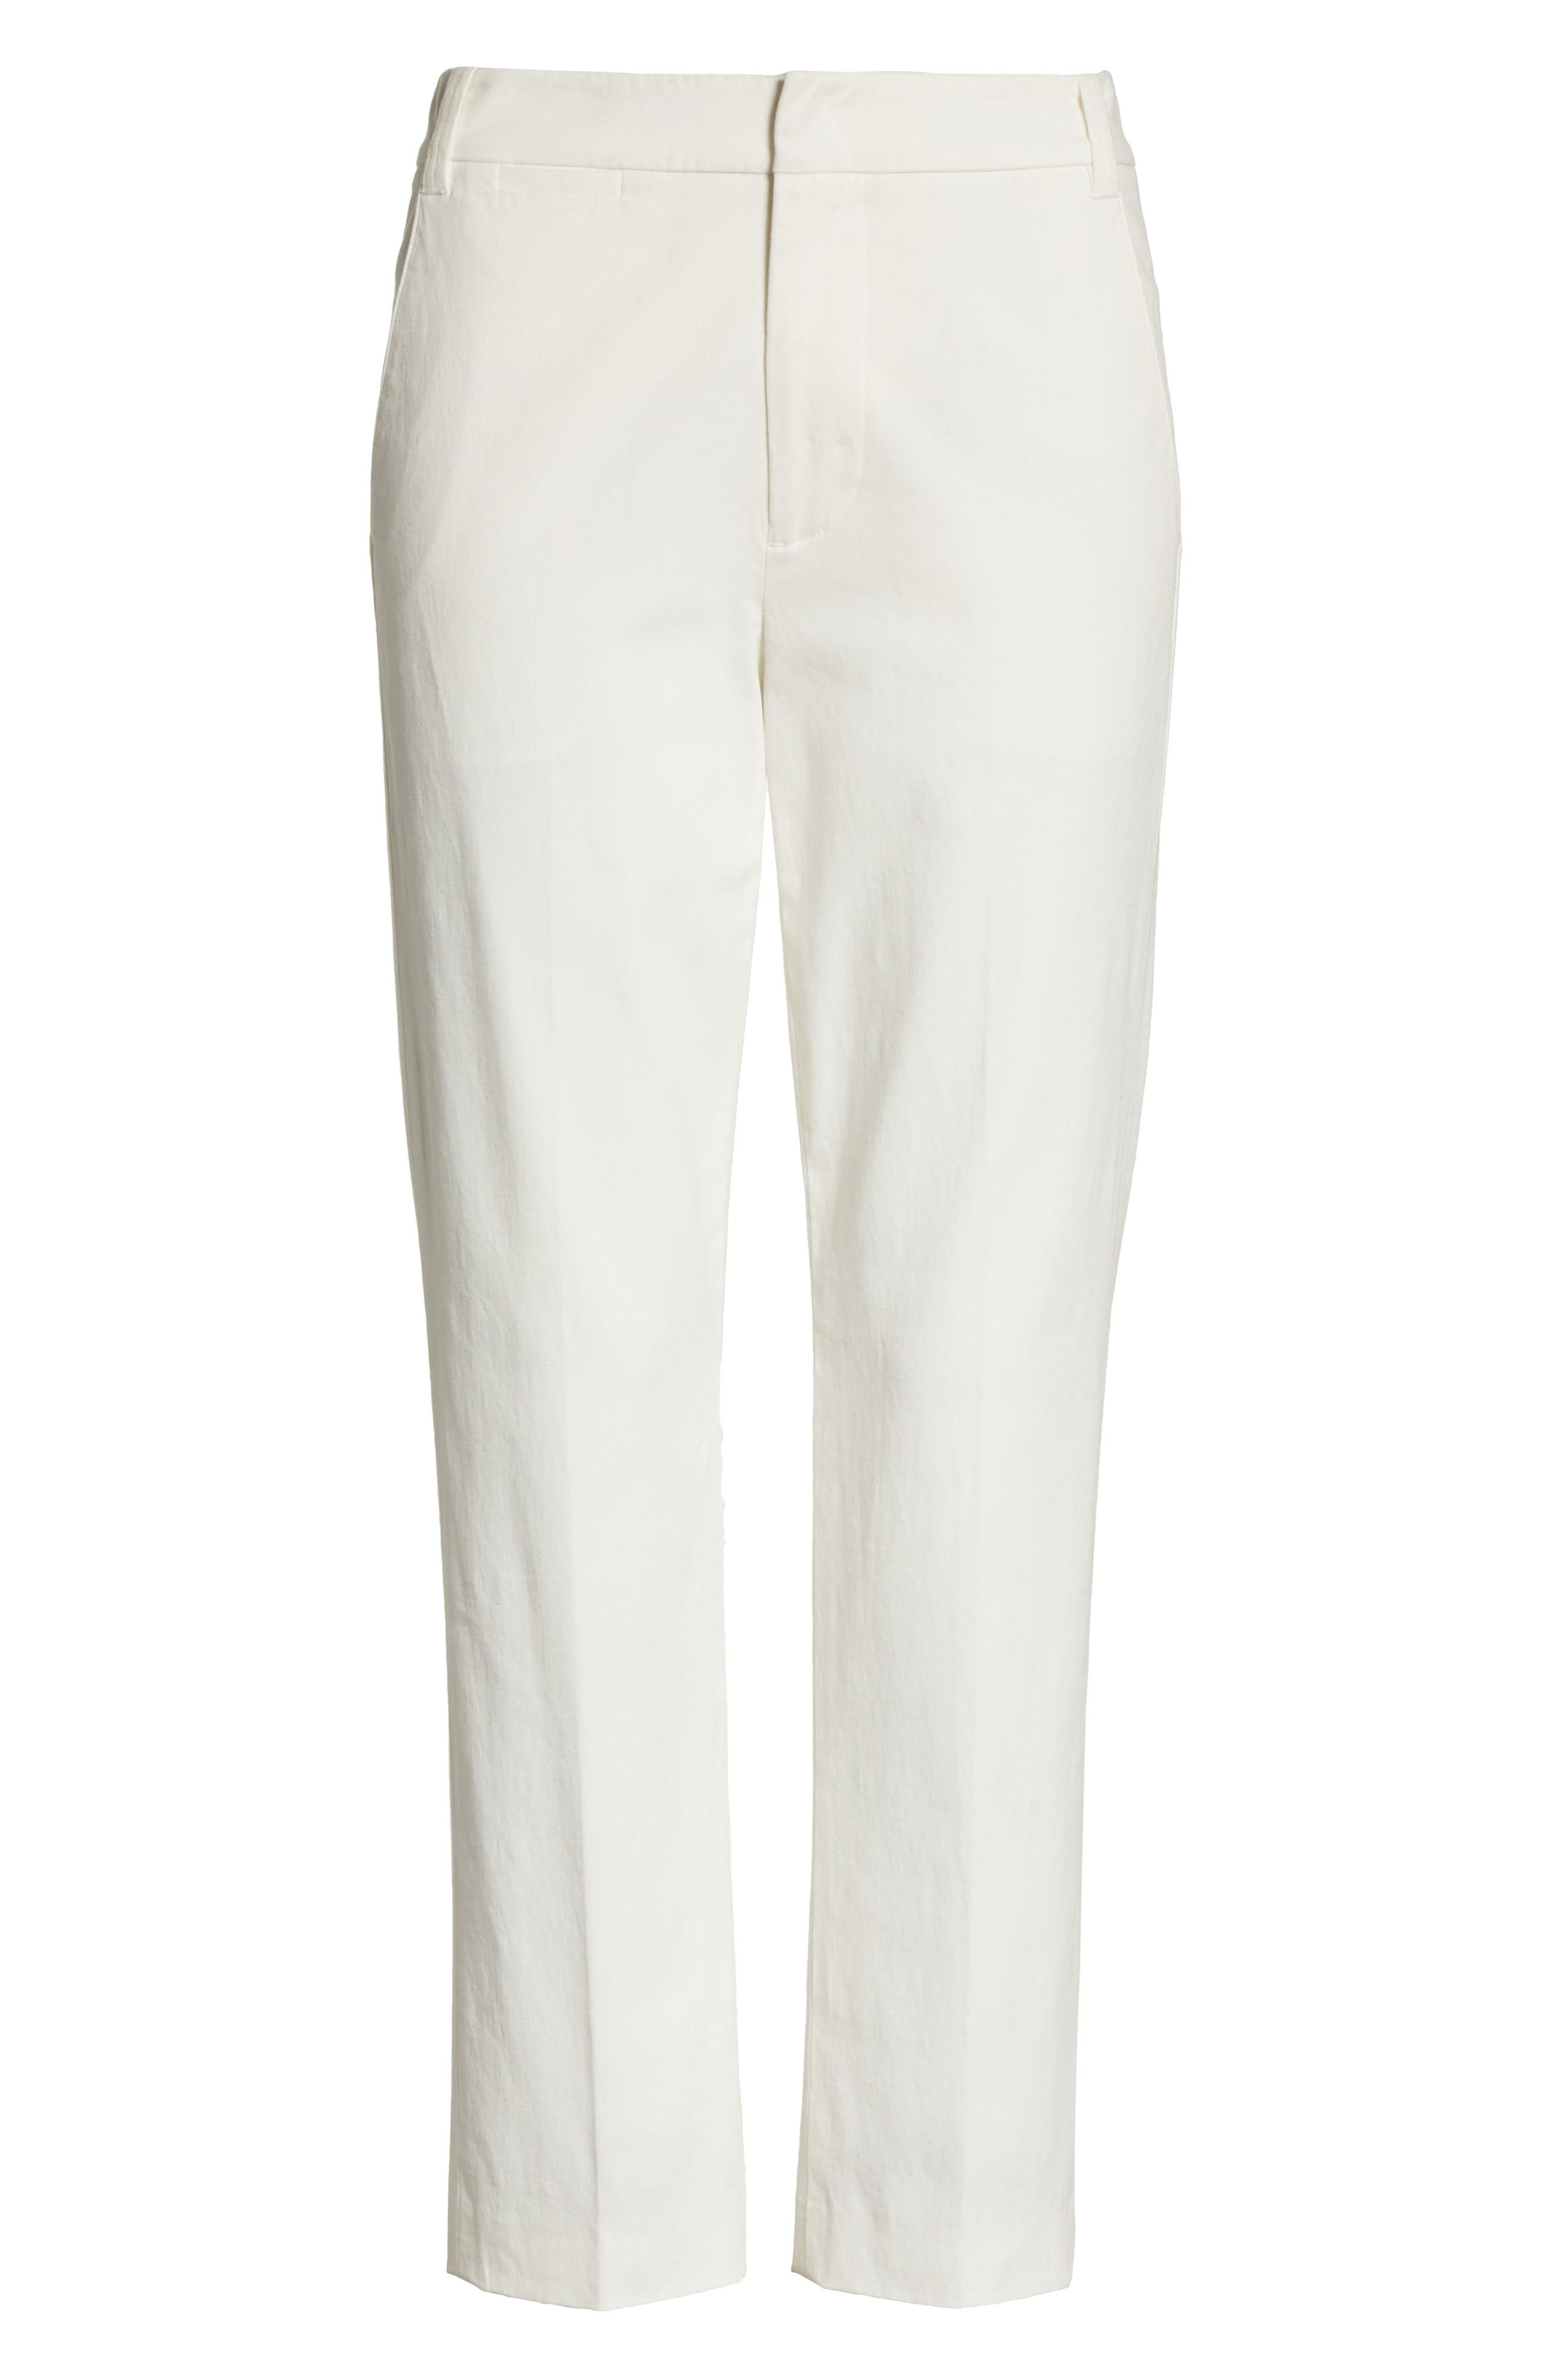 Crop Chino Pants,                             Alternate thumbnail 6, color,                             OFF WHITE